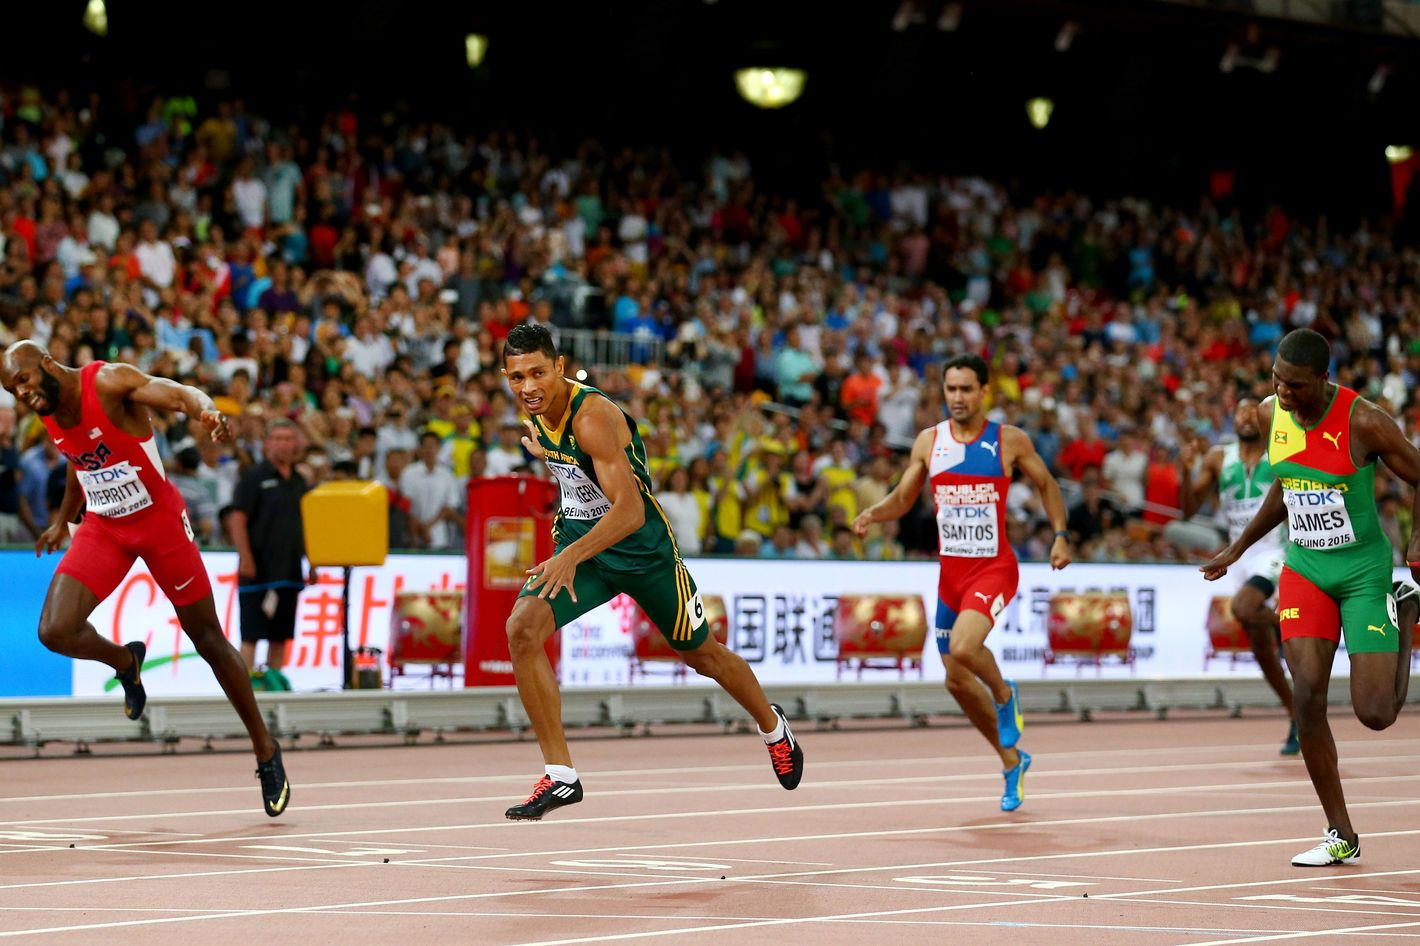 Men's 400 Meters Is Shaping Up As the Most Exciting Race